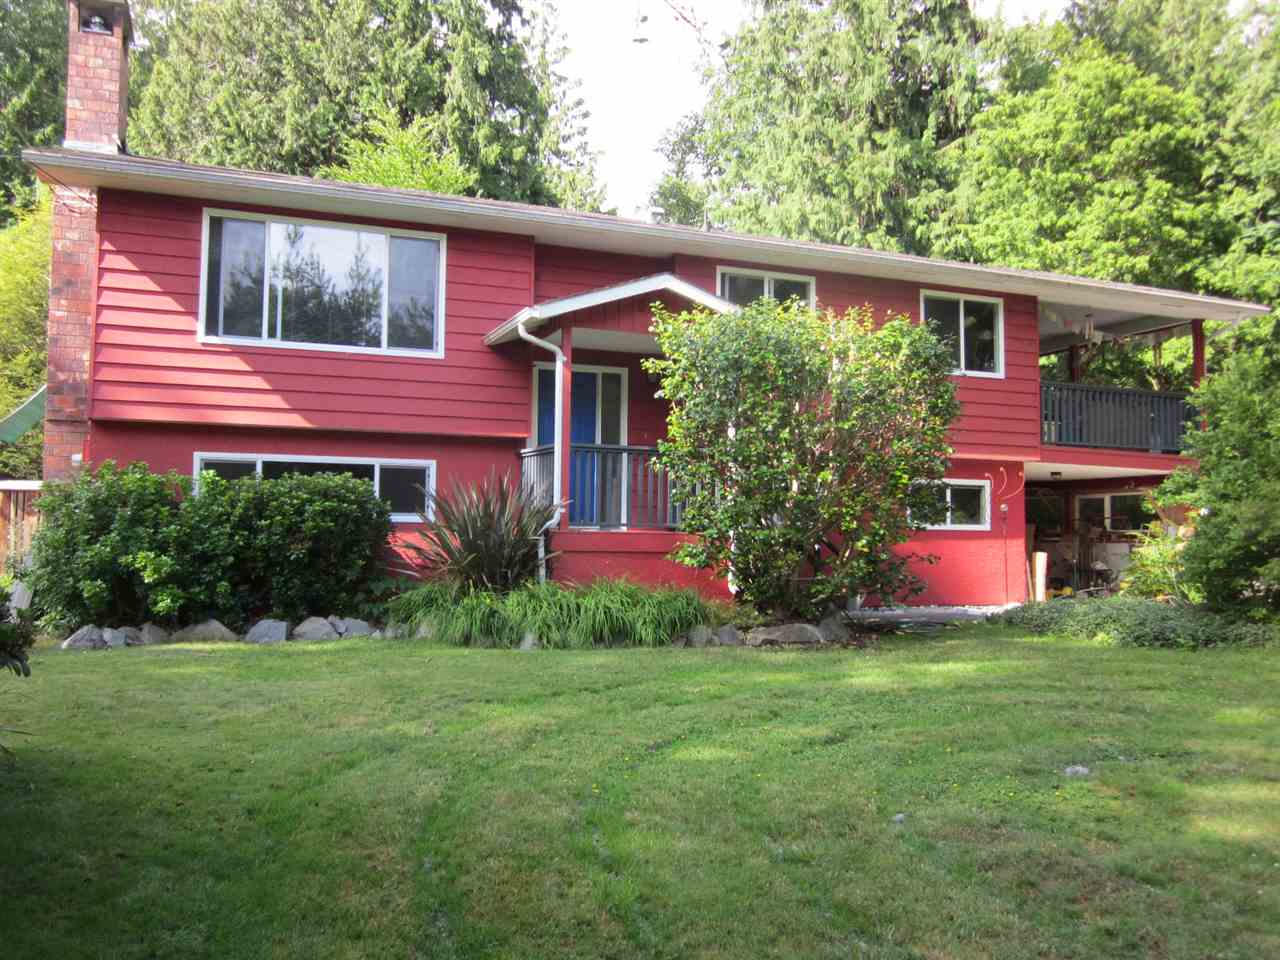 Main Photo: 993 CHERYL-ANN PARK Road: Roberts Creek House for sale (Sunshine Coast)  : MLS(r) # R2093464